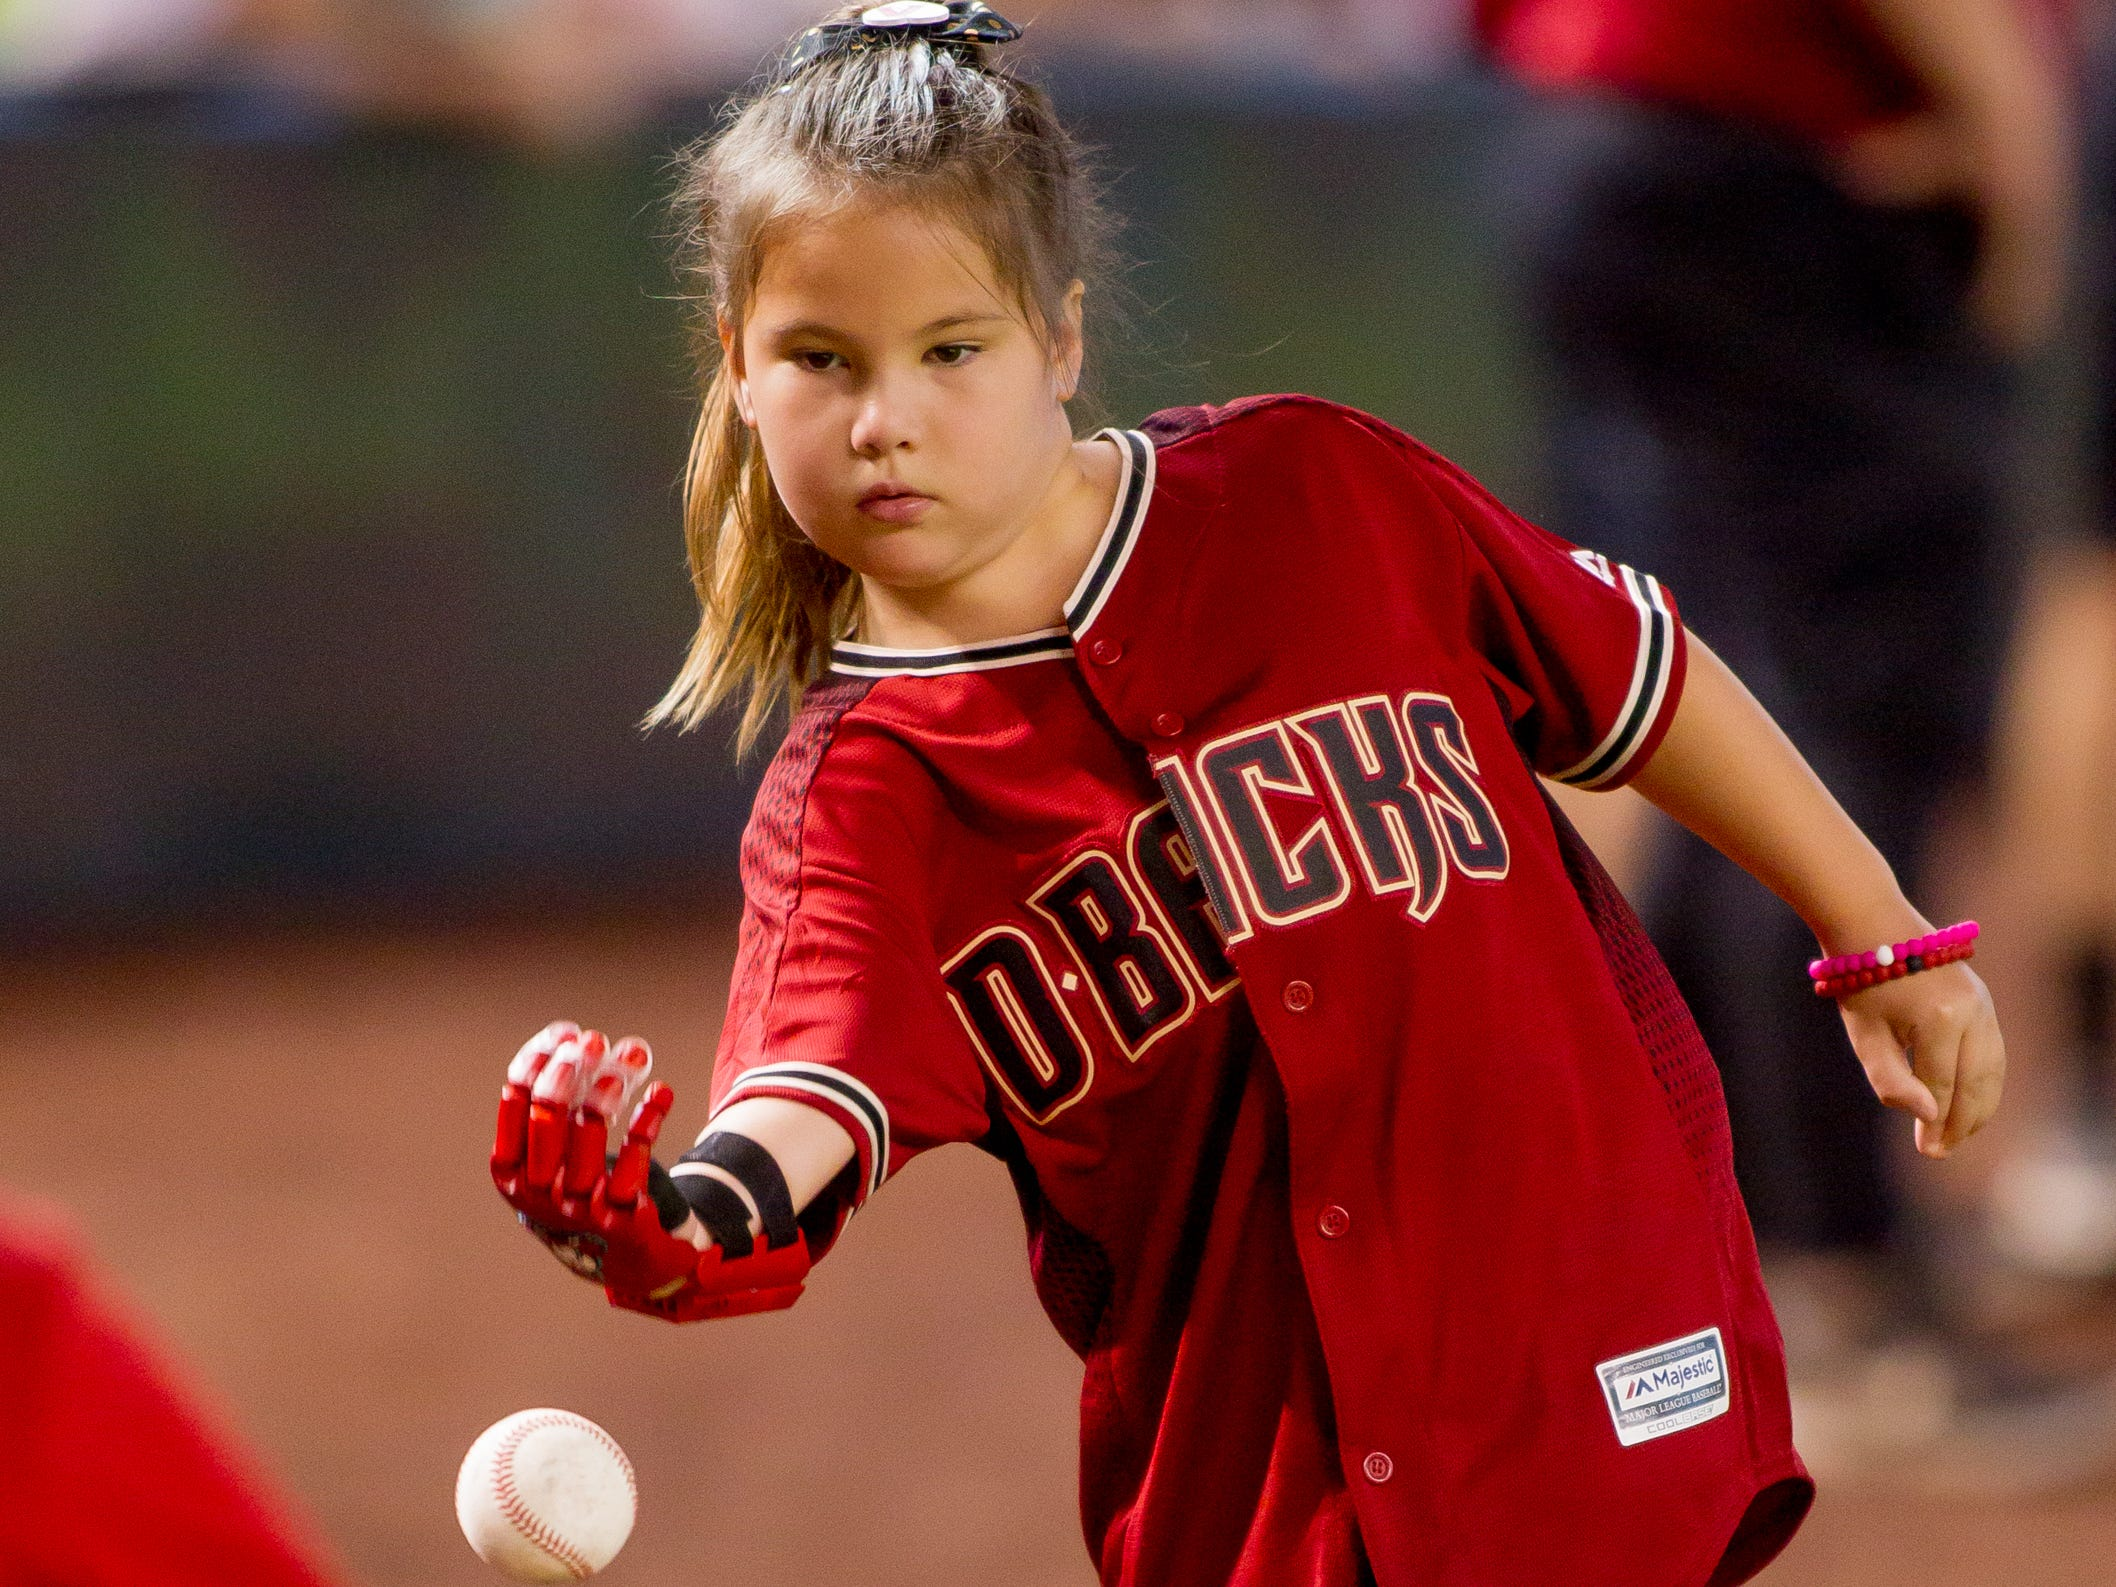 Hailey Dawson, 8, of Henderson, Nevada, practices throwing on July 21, 2018, before the Arizona Diamondbacks' matchup against the Colorado Rockies at Chase Field in Phoenix, Arizona. Hailey, born with Poland Syndrome, received a 3D-printed prosthetic hand created by engineering students from the University of Nevada Las Vegas.